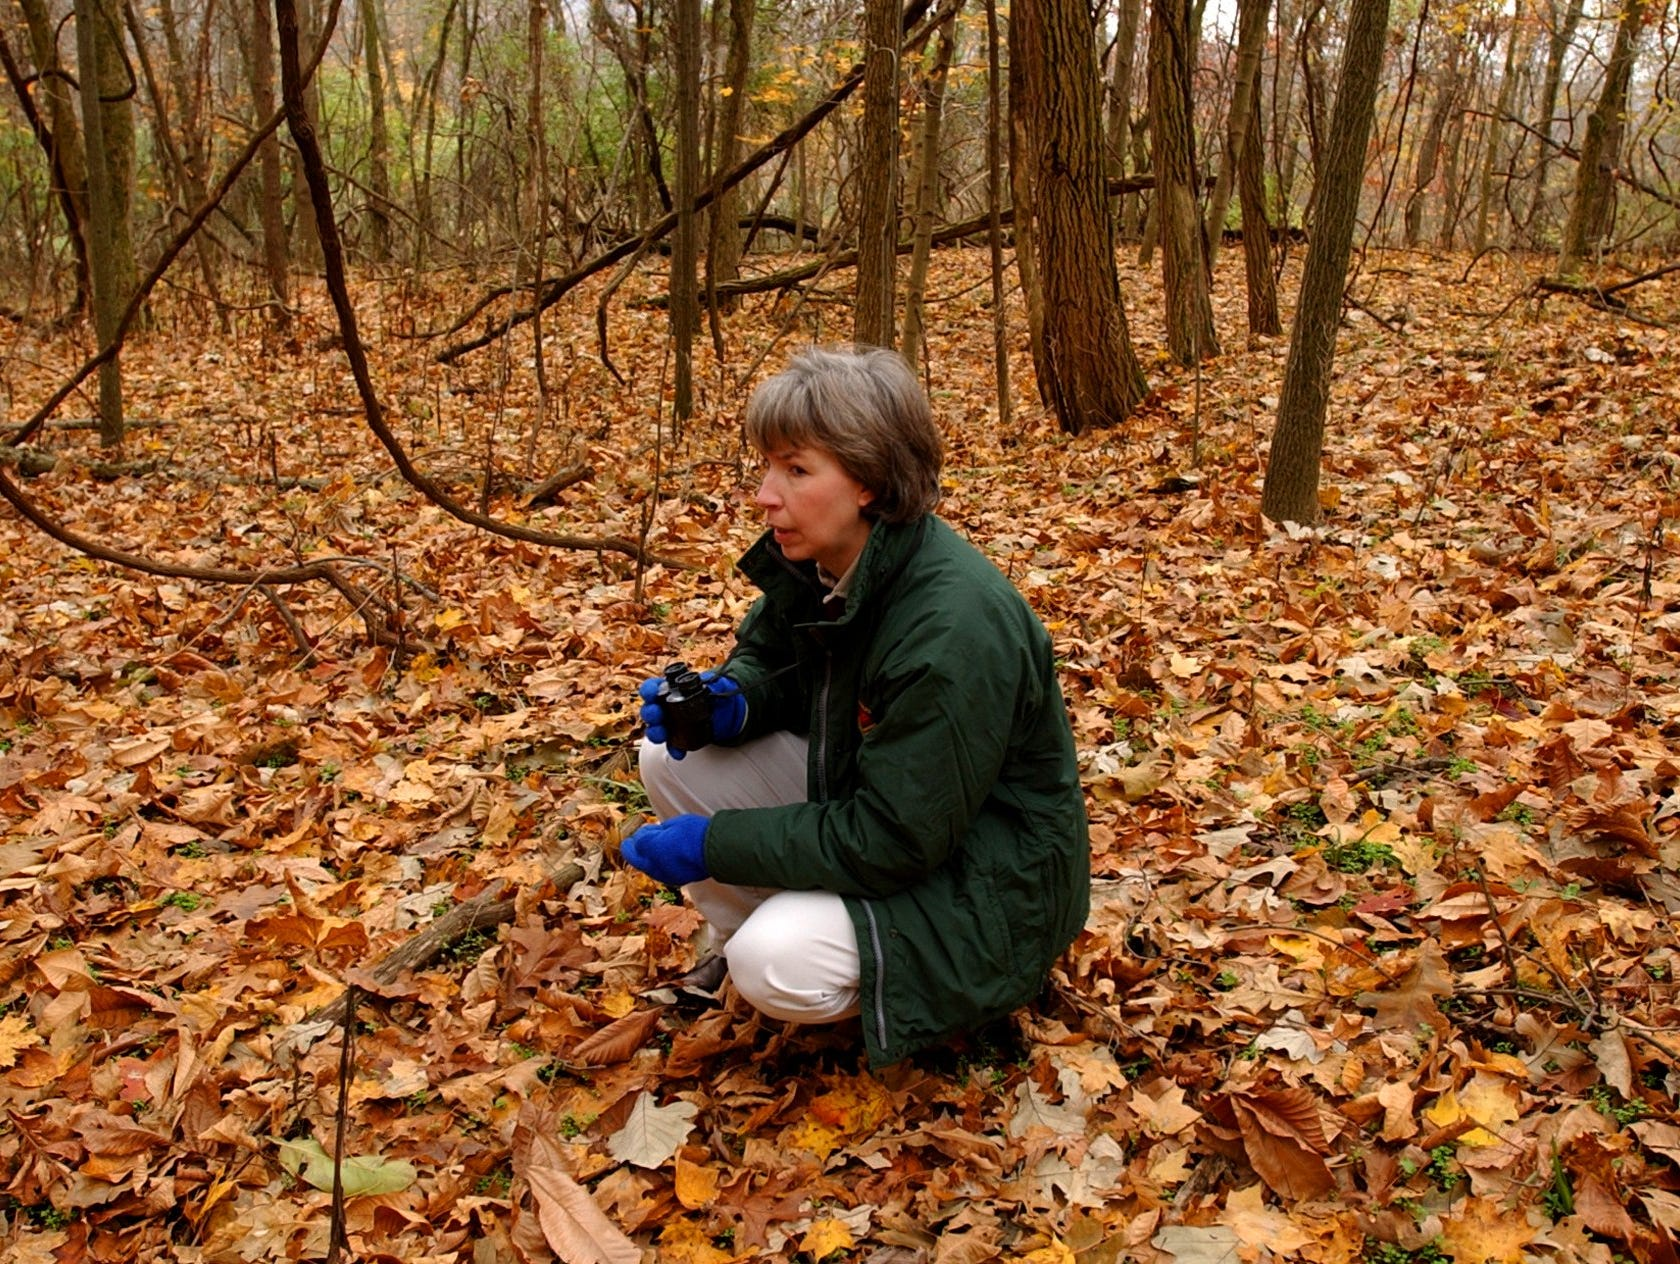 Hamilton County Park District Naturalist Carol Mundy pauses and remains quiet and motionless during an unsuccessful search for wild turkeys at Miami Whitewater Forest in 2002.